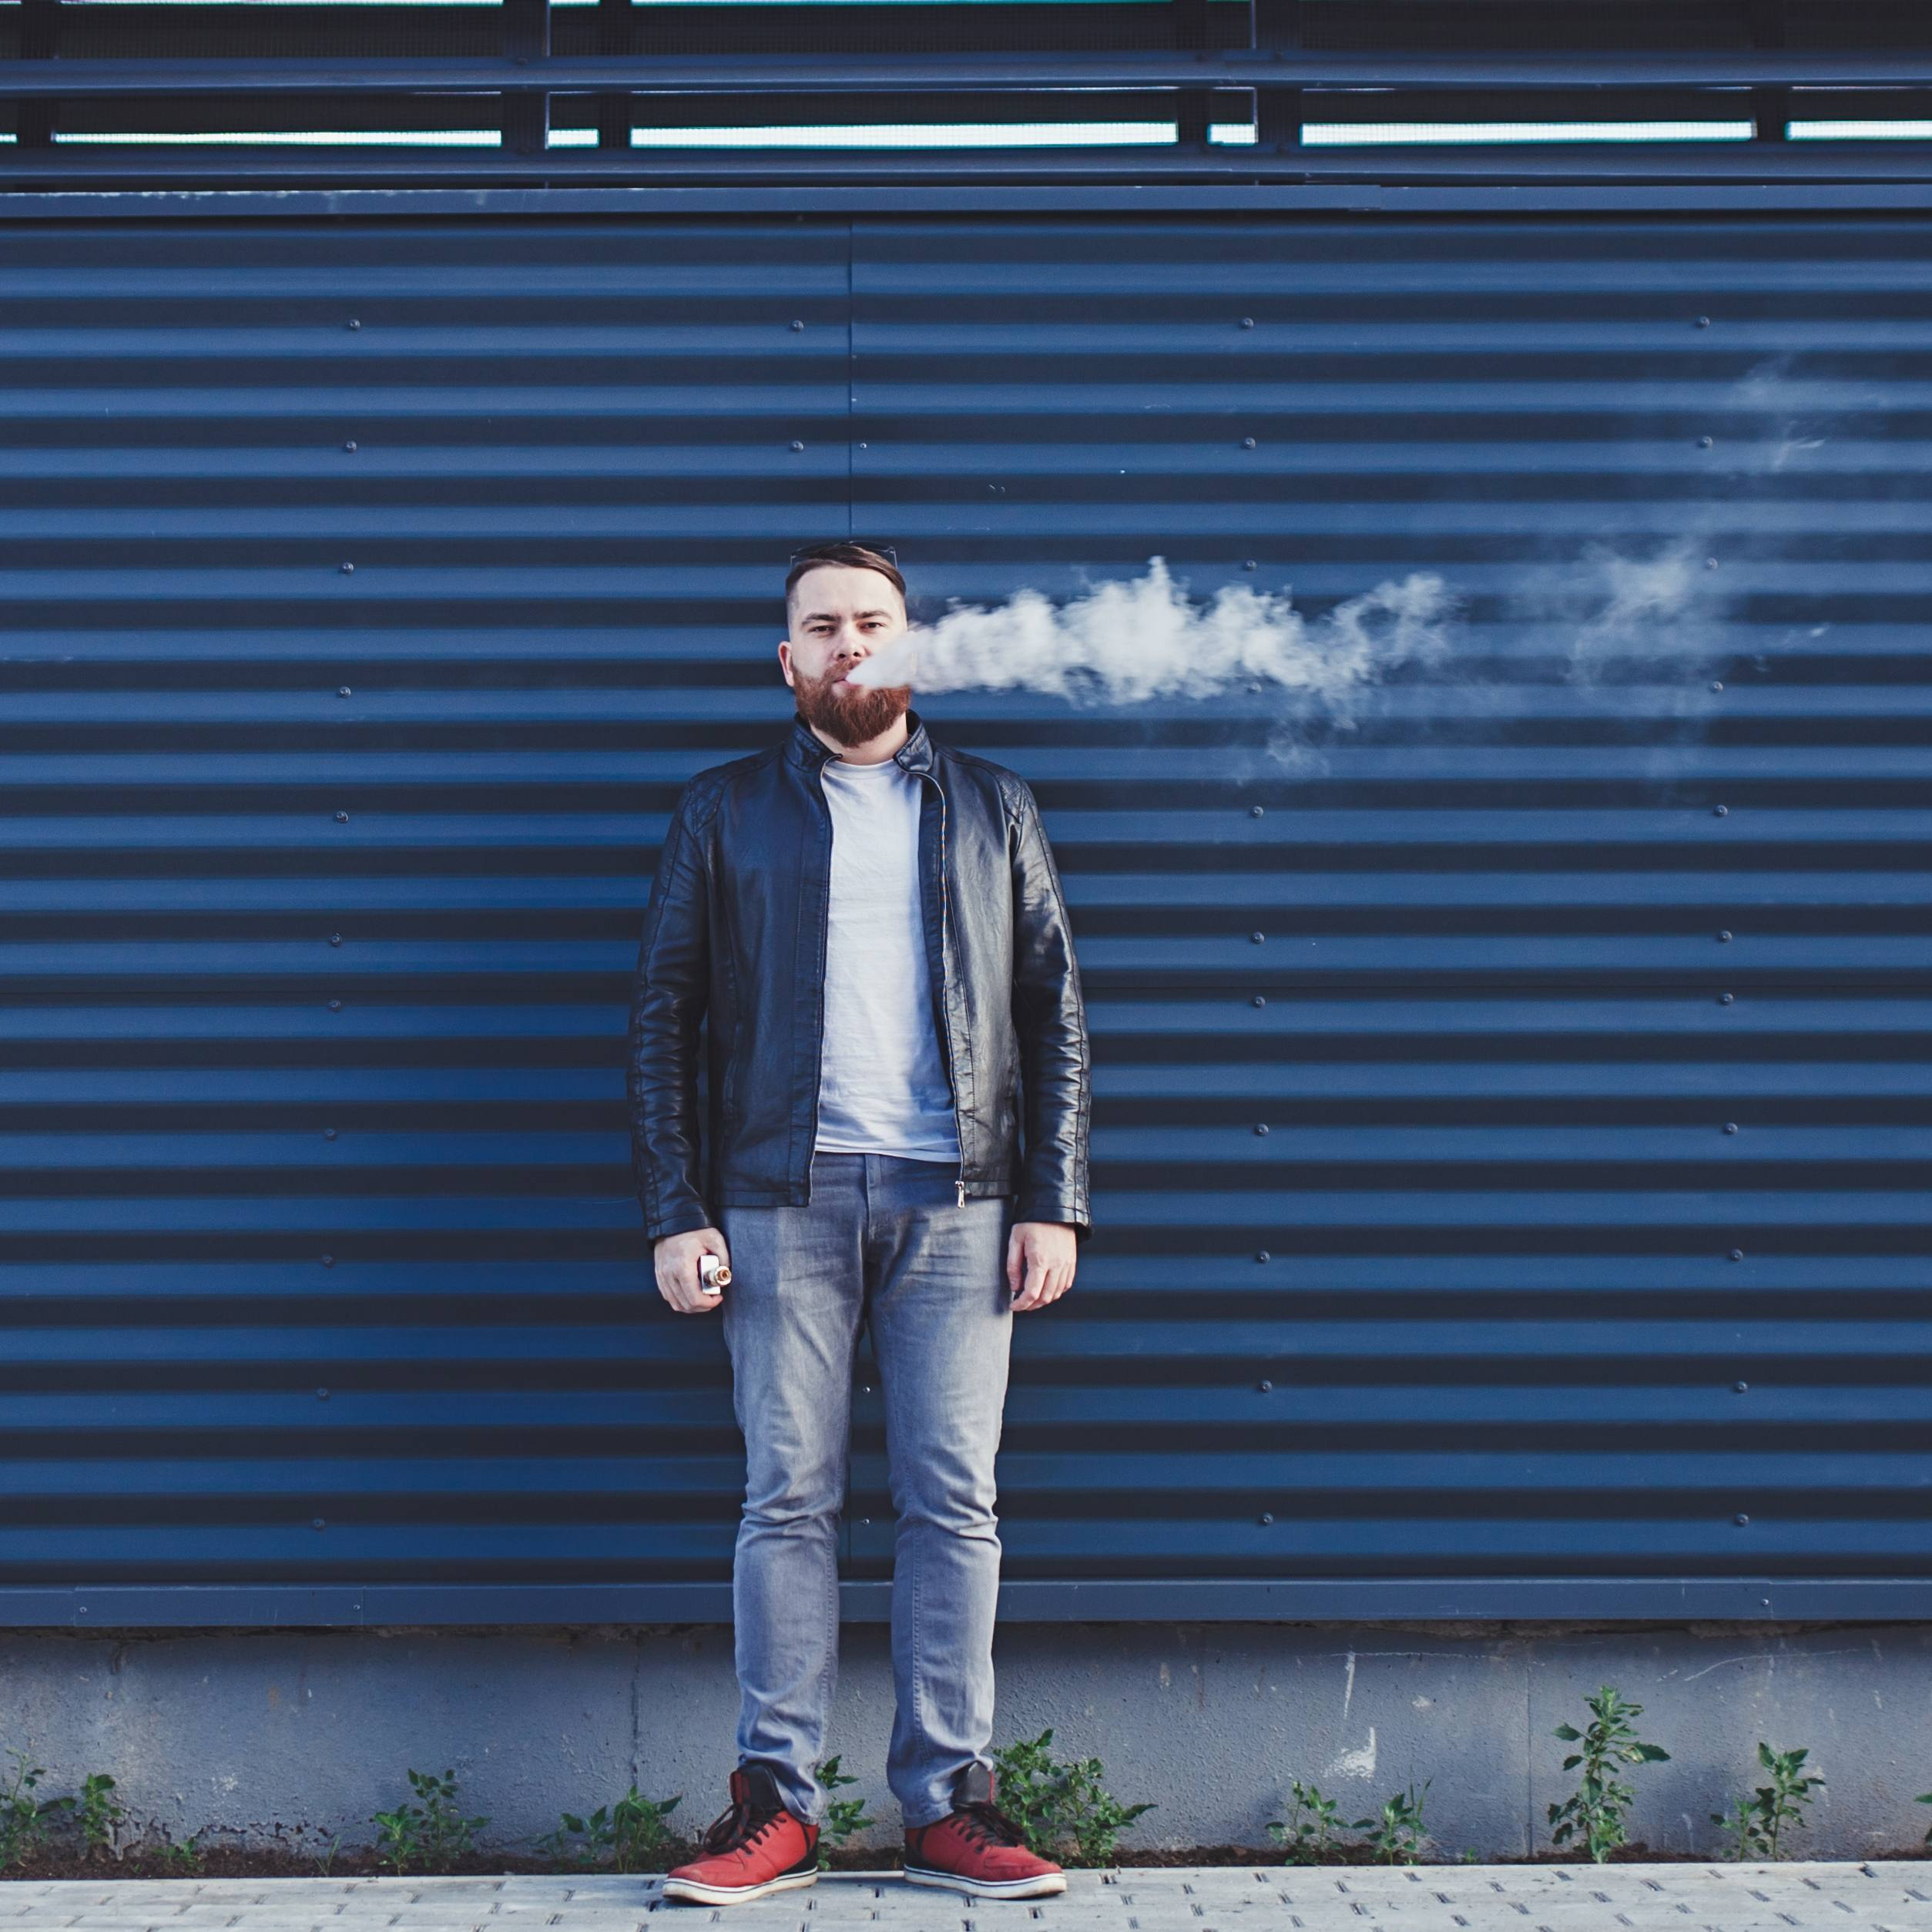 a white adult male in blue jeans standing outside in front of a blue metal building and smoking a cigarette or vaping